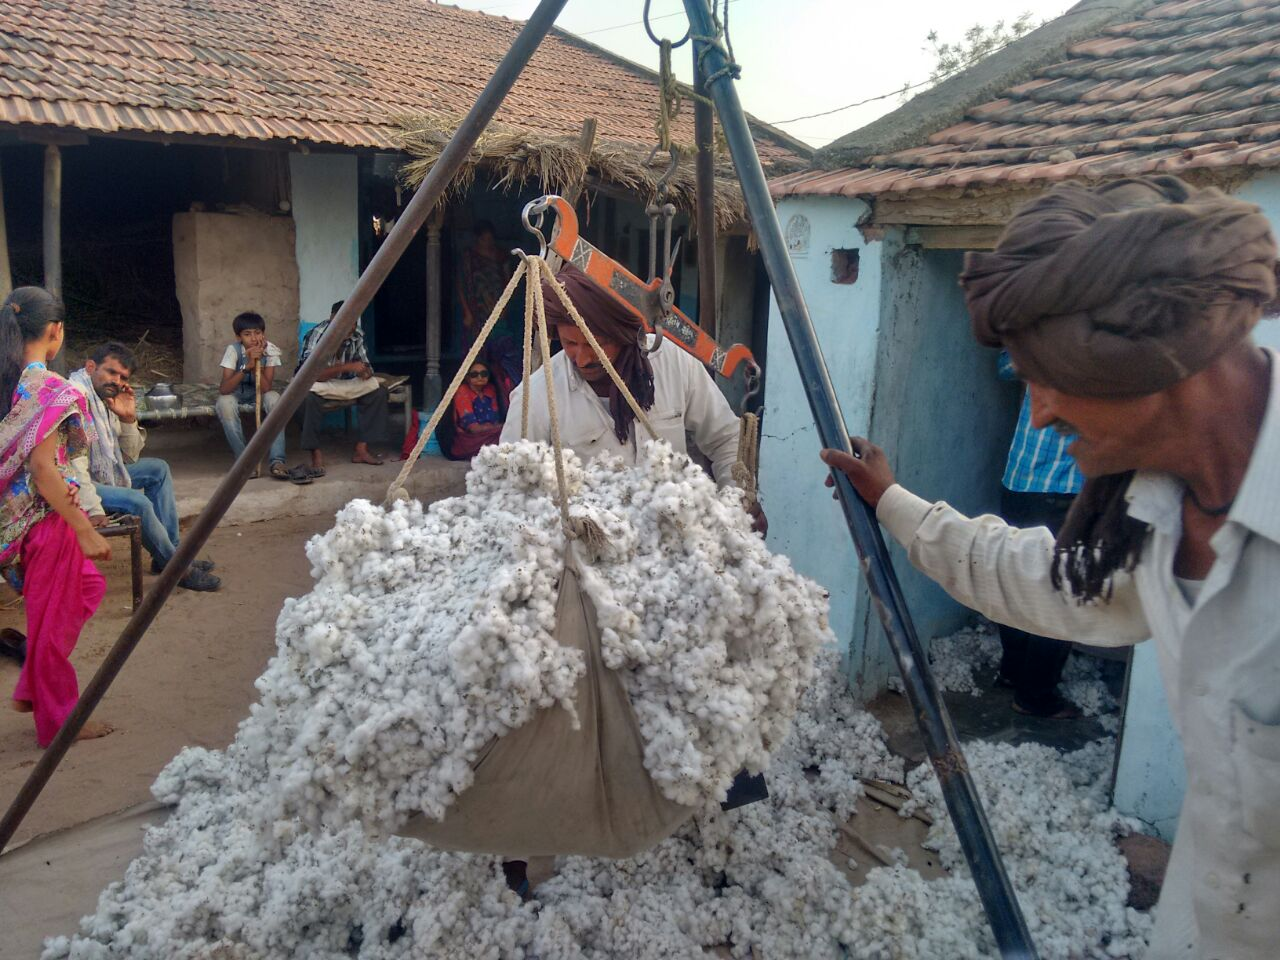 Stitch by Stitch – A Textile Company Supporting Sustainable Cotton Production